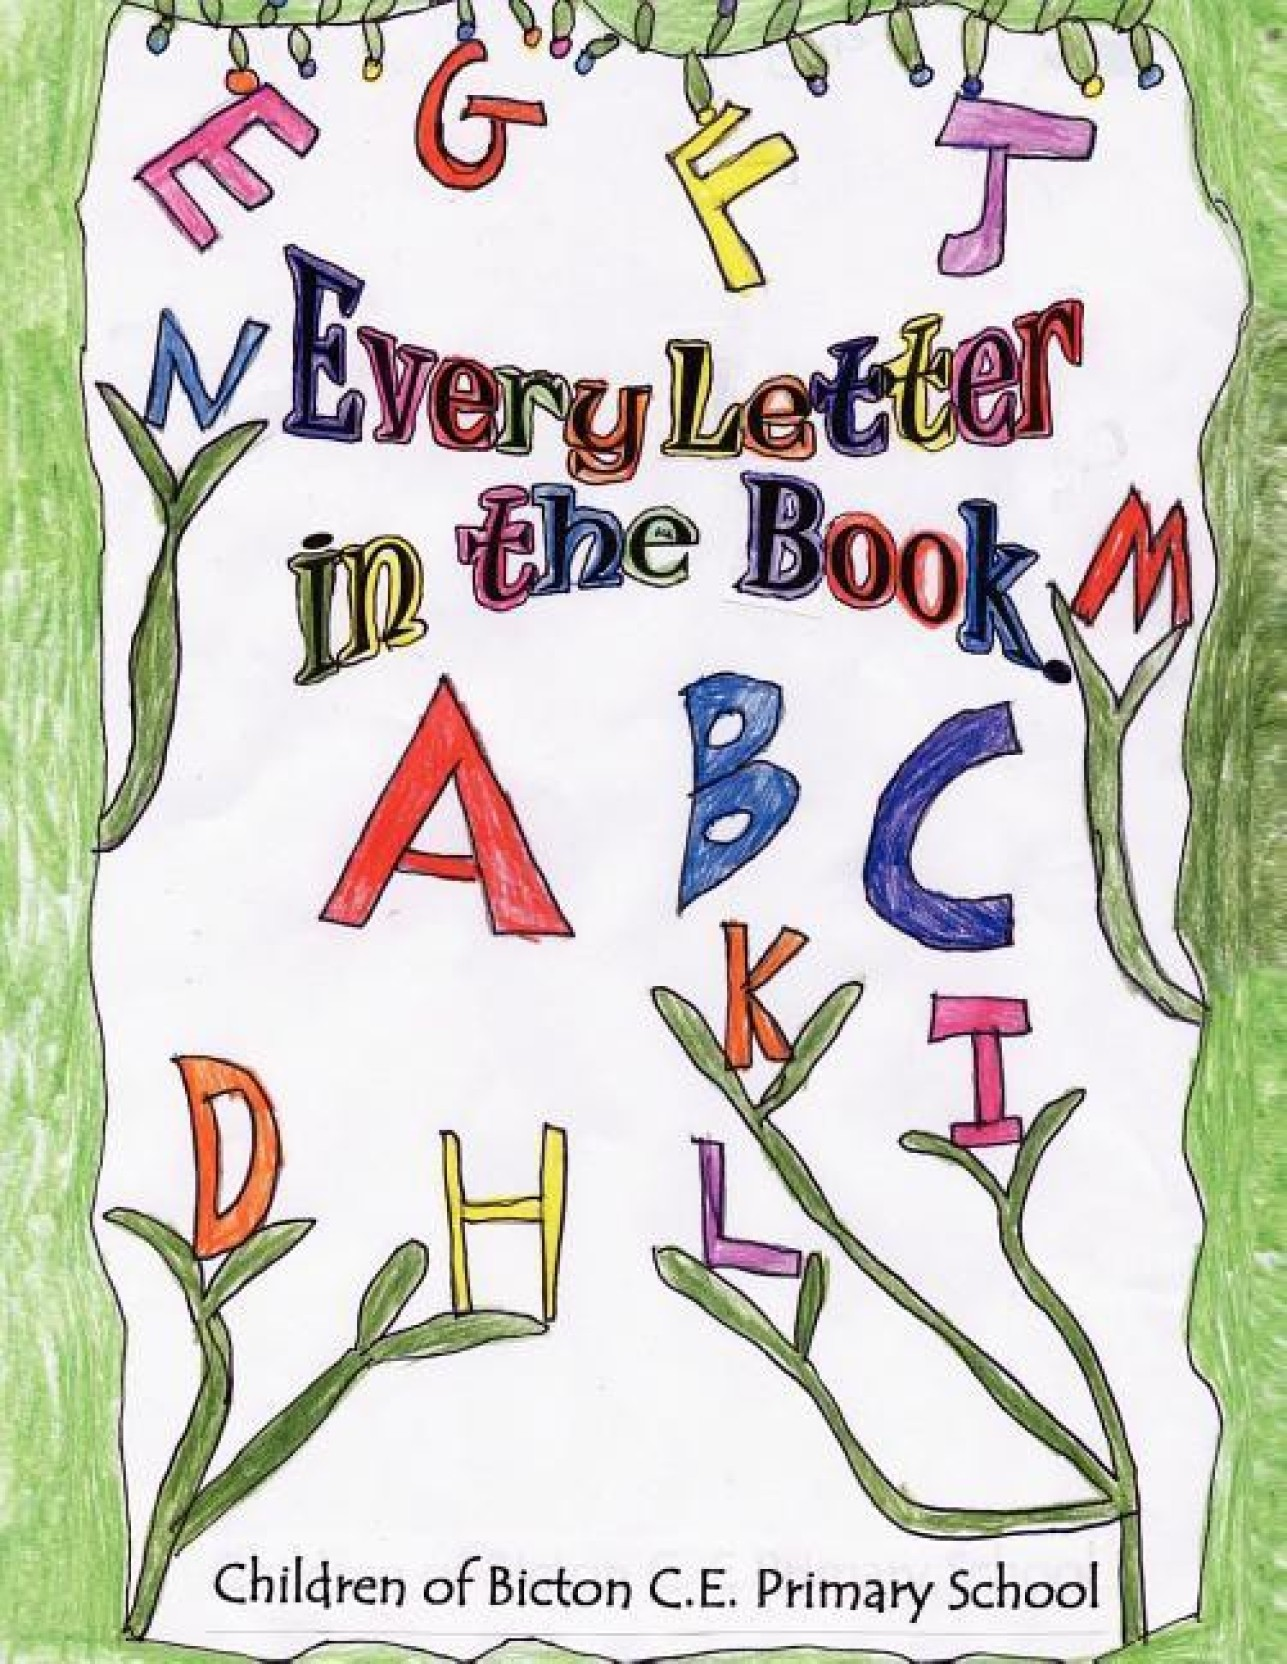 Every Letter in the Book: Buy Every Letter in the Book by